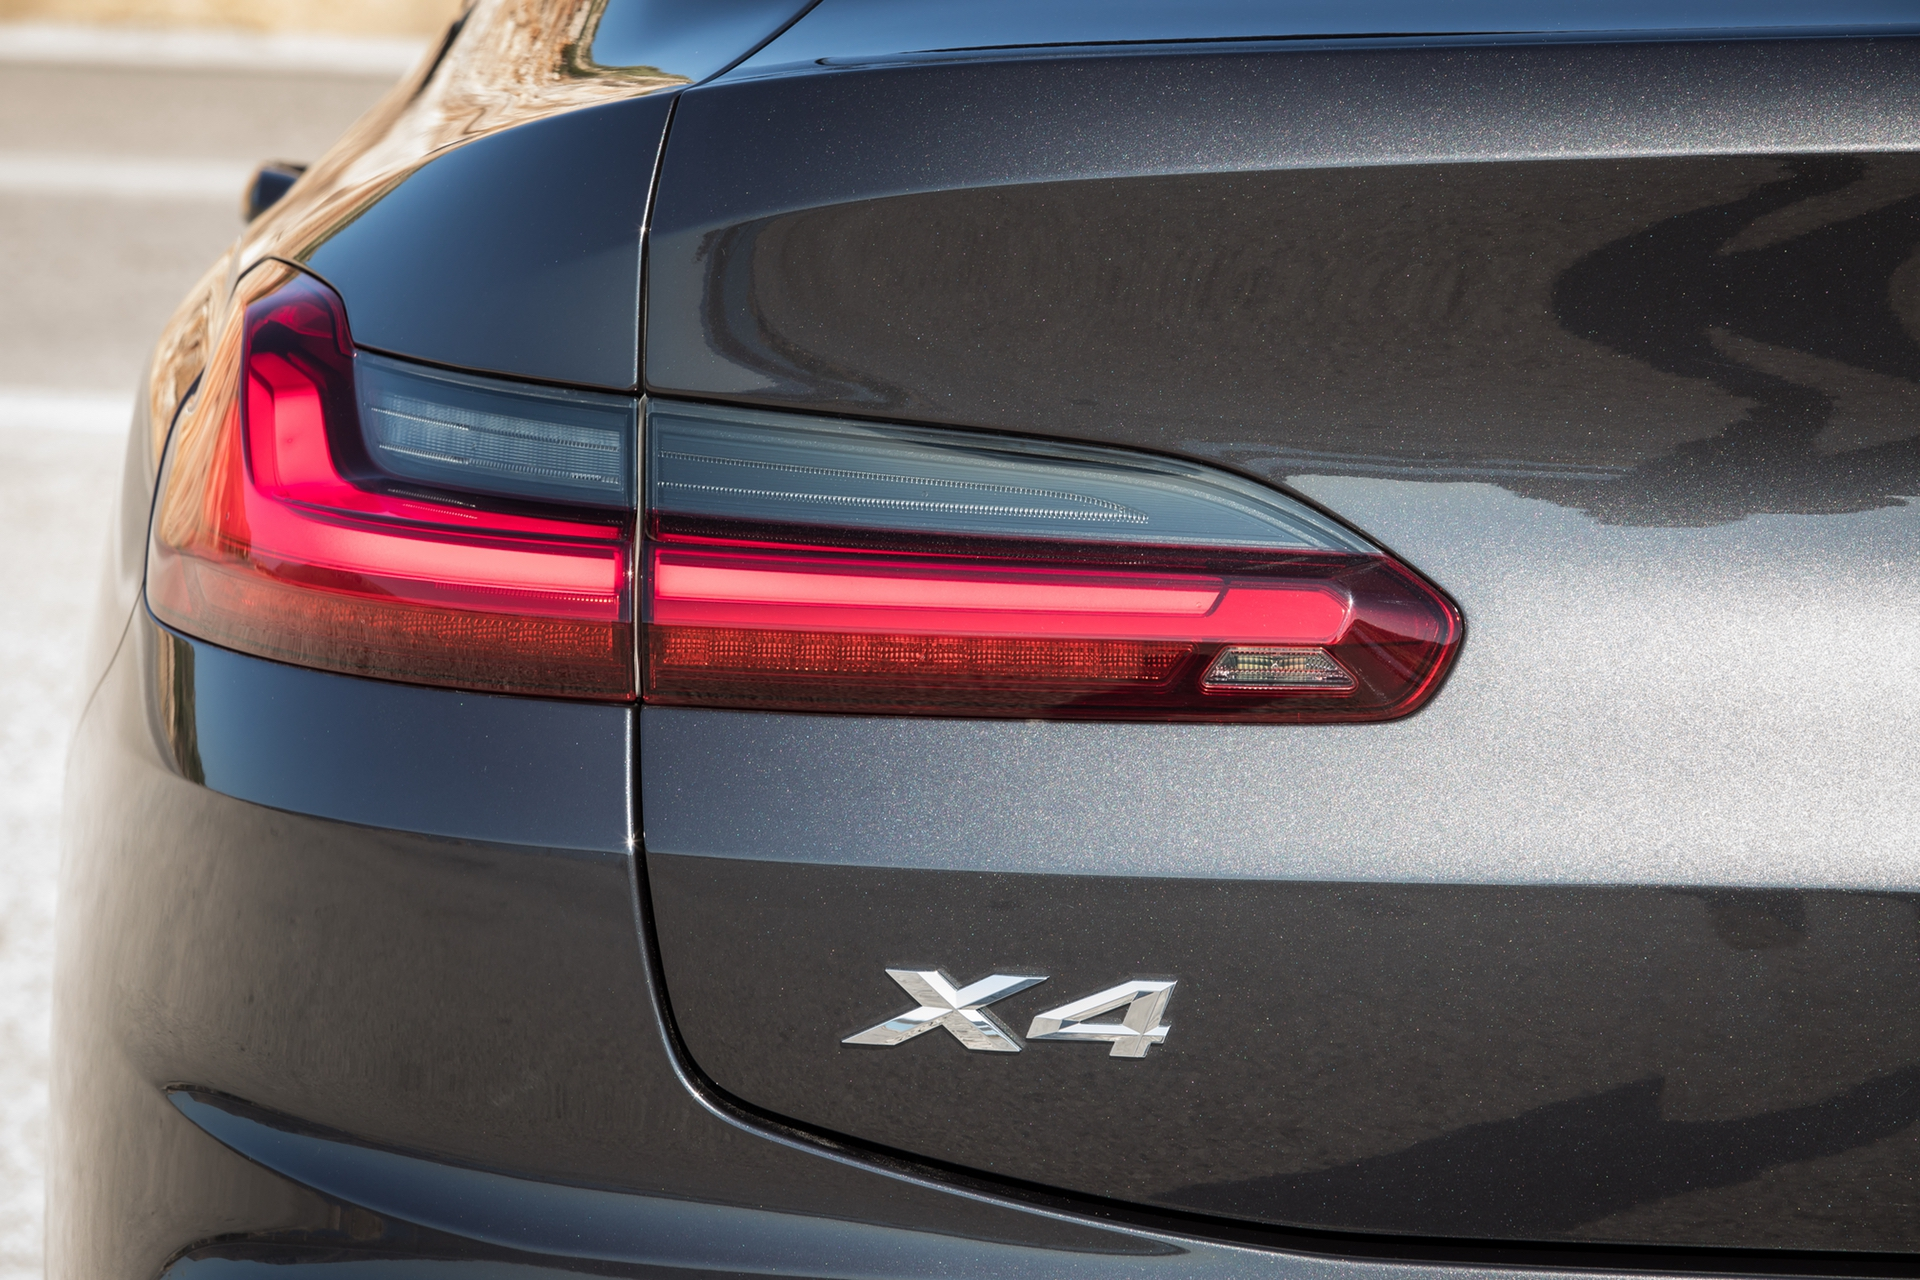 BMW_X4_greek_presskit_0123